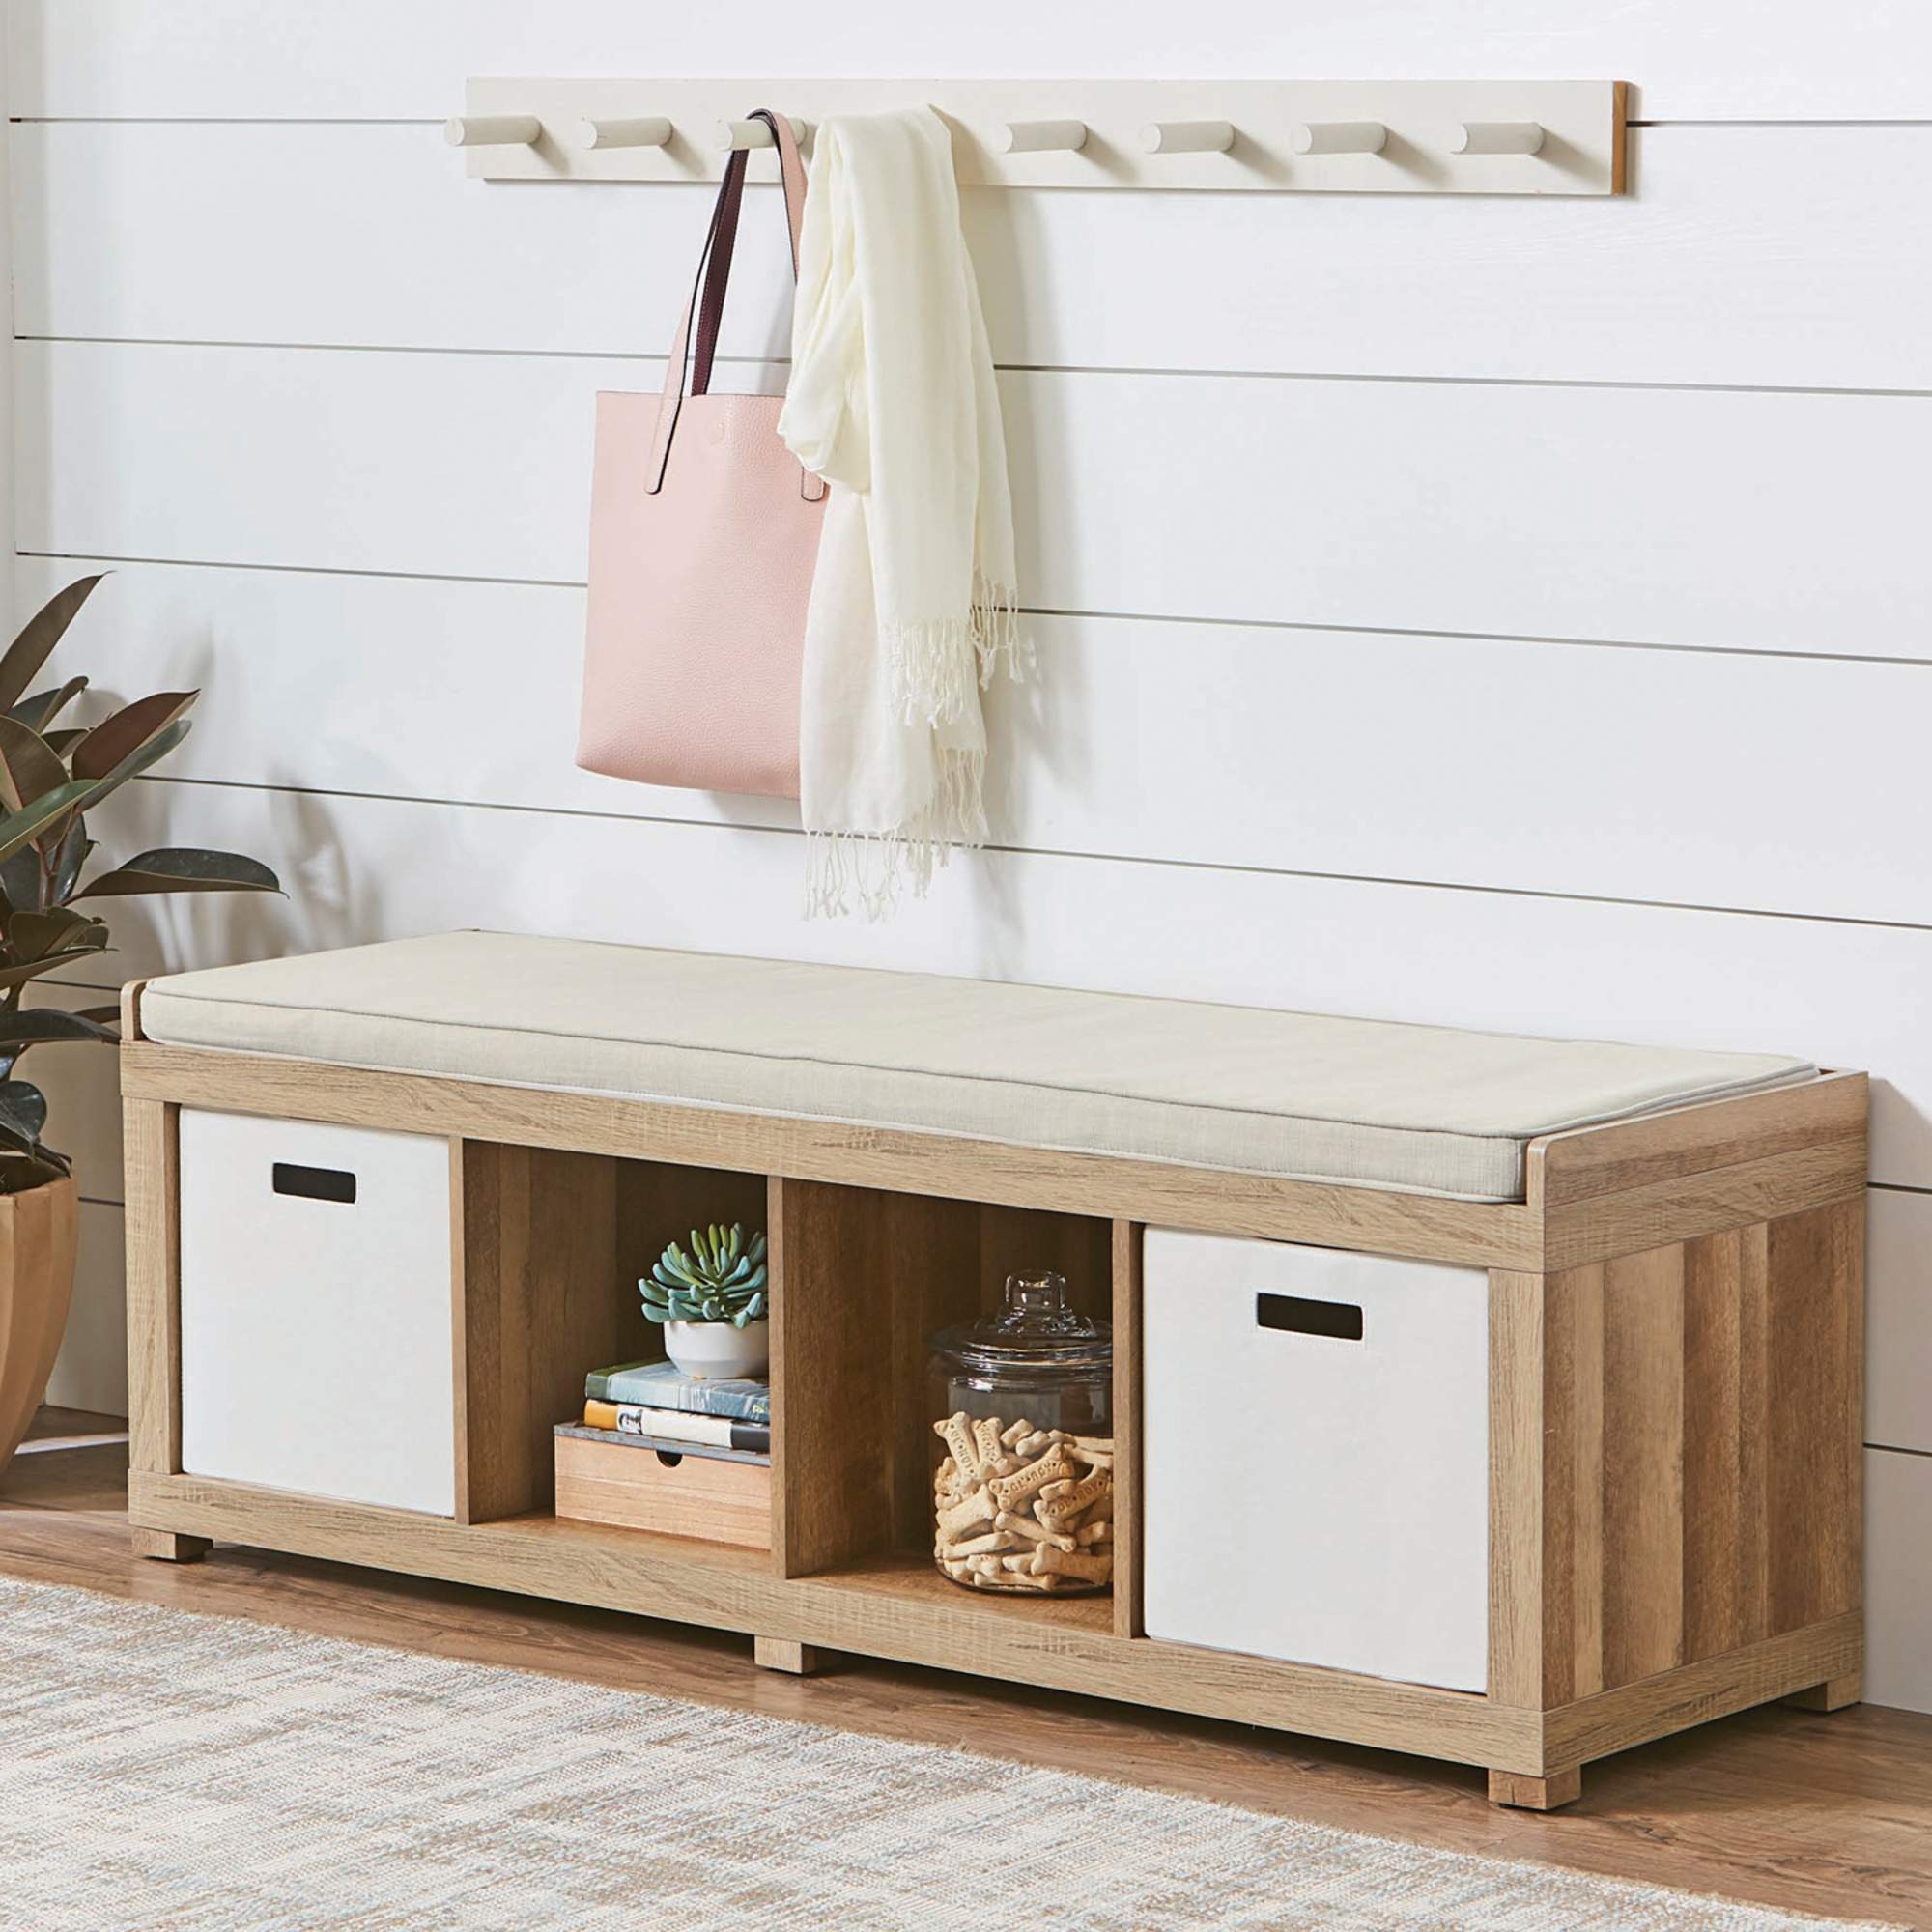 Pleasant Better Homes And Gardens 4 Cube Organizer Storage Bench Multiple Finishes Walmart Com Gmtry Best Dining Table And Chair Ideas Images Gmtryco